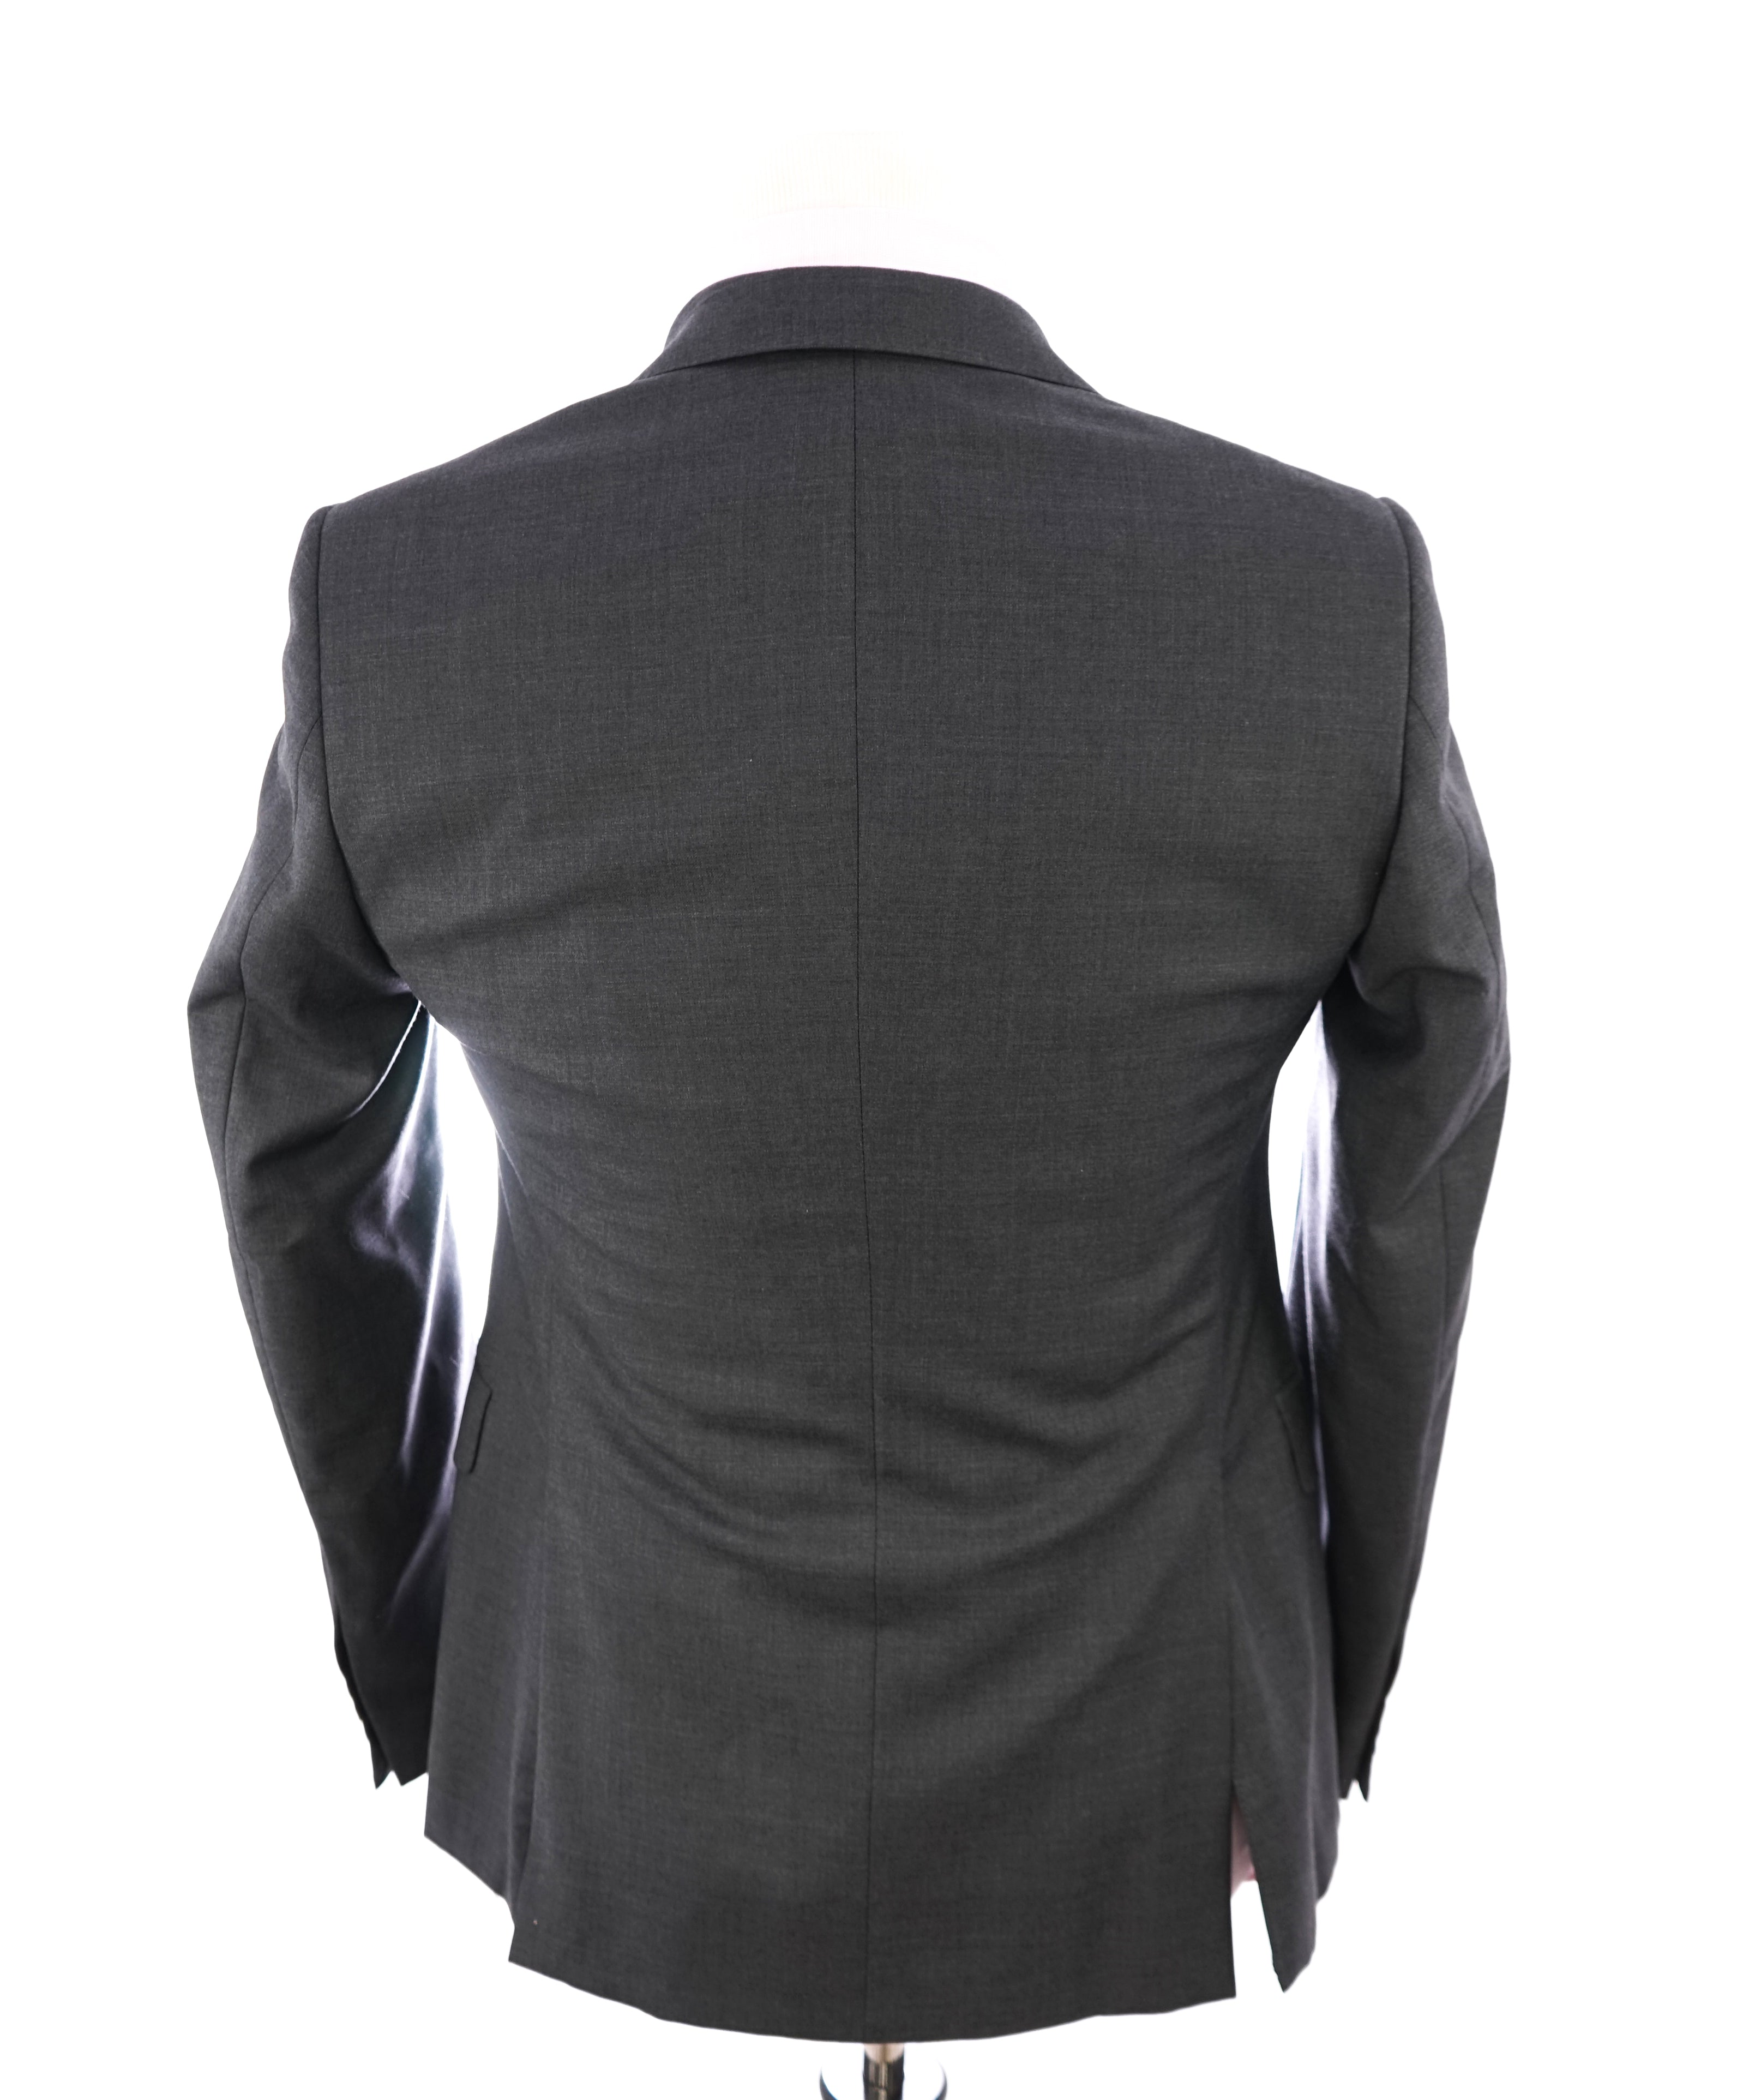 ARMANI COLLEZIONI - Solid Gray Wool Suit W Pick Stitch Detail - 36R